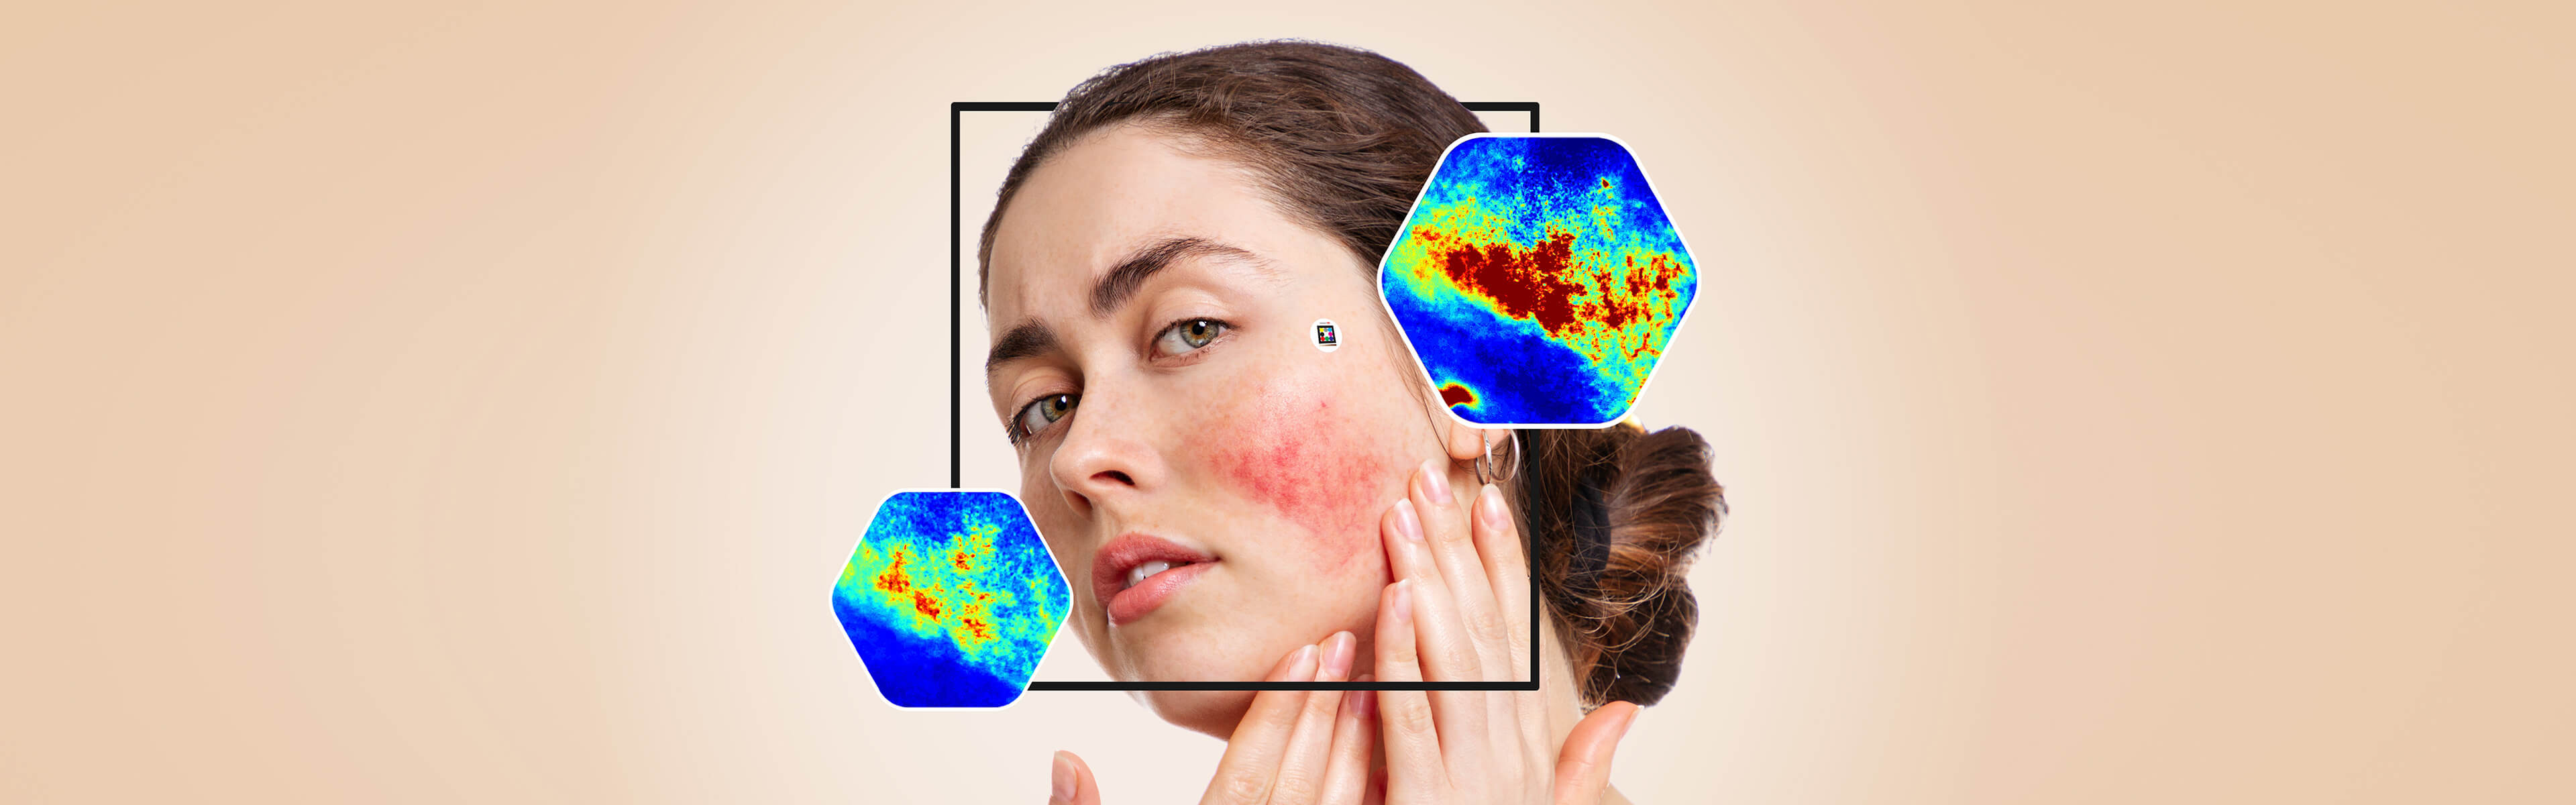 Woman with rosacea with Scarletred skin patch next to it